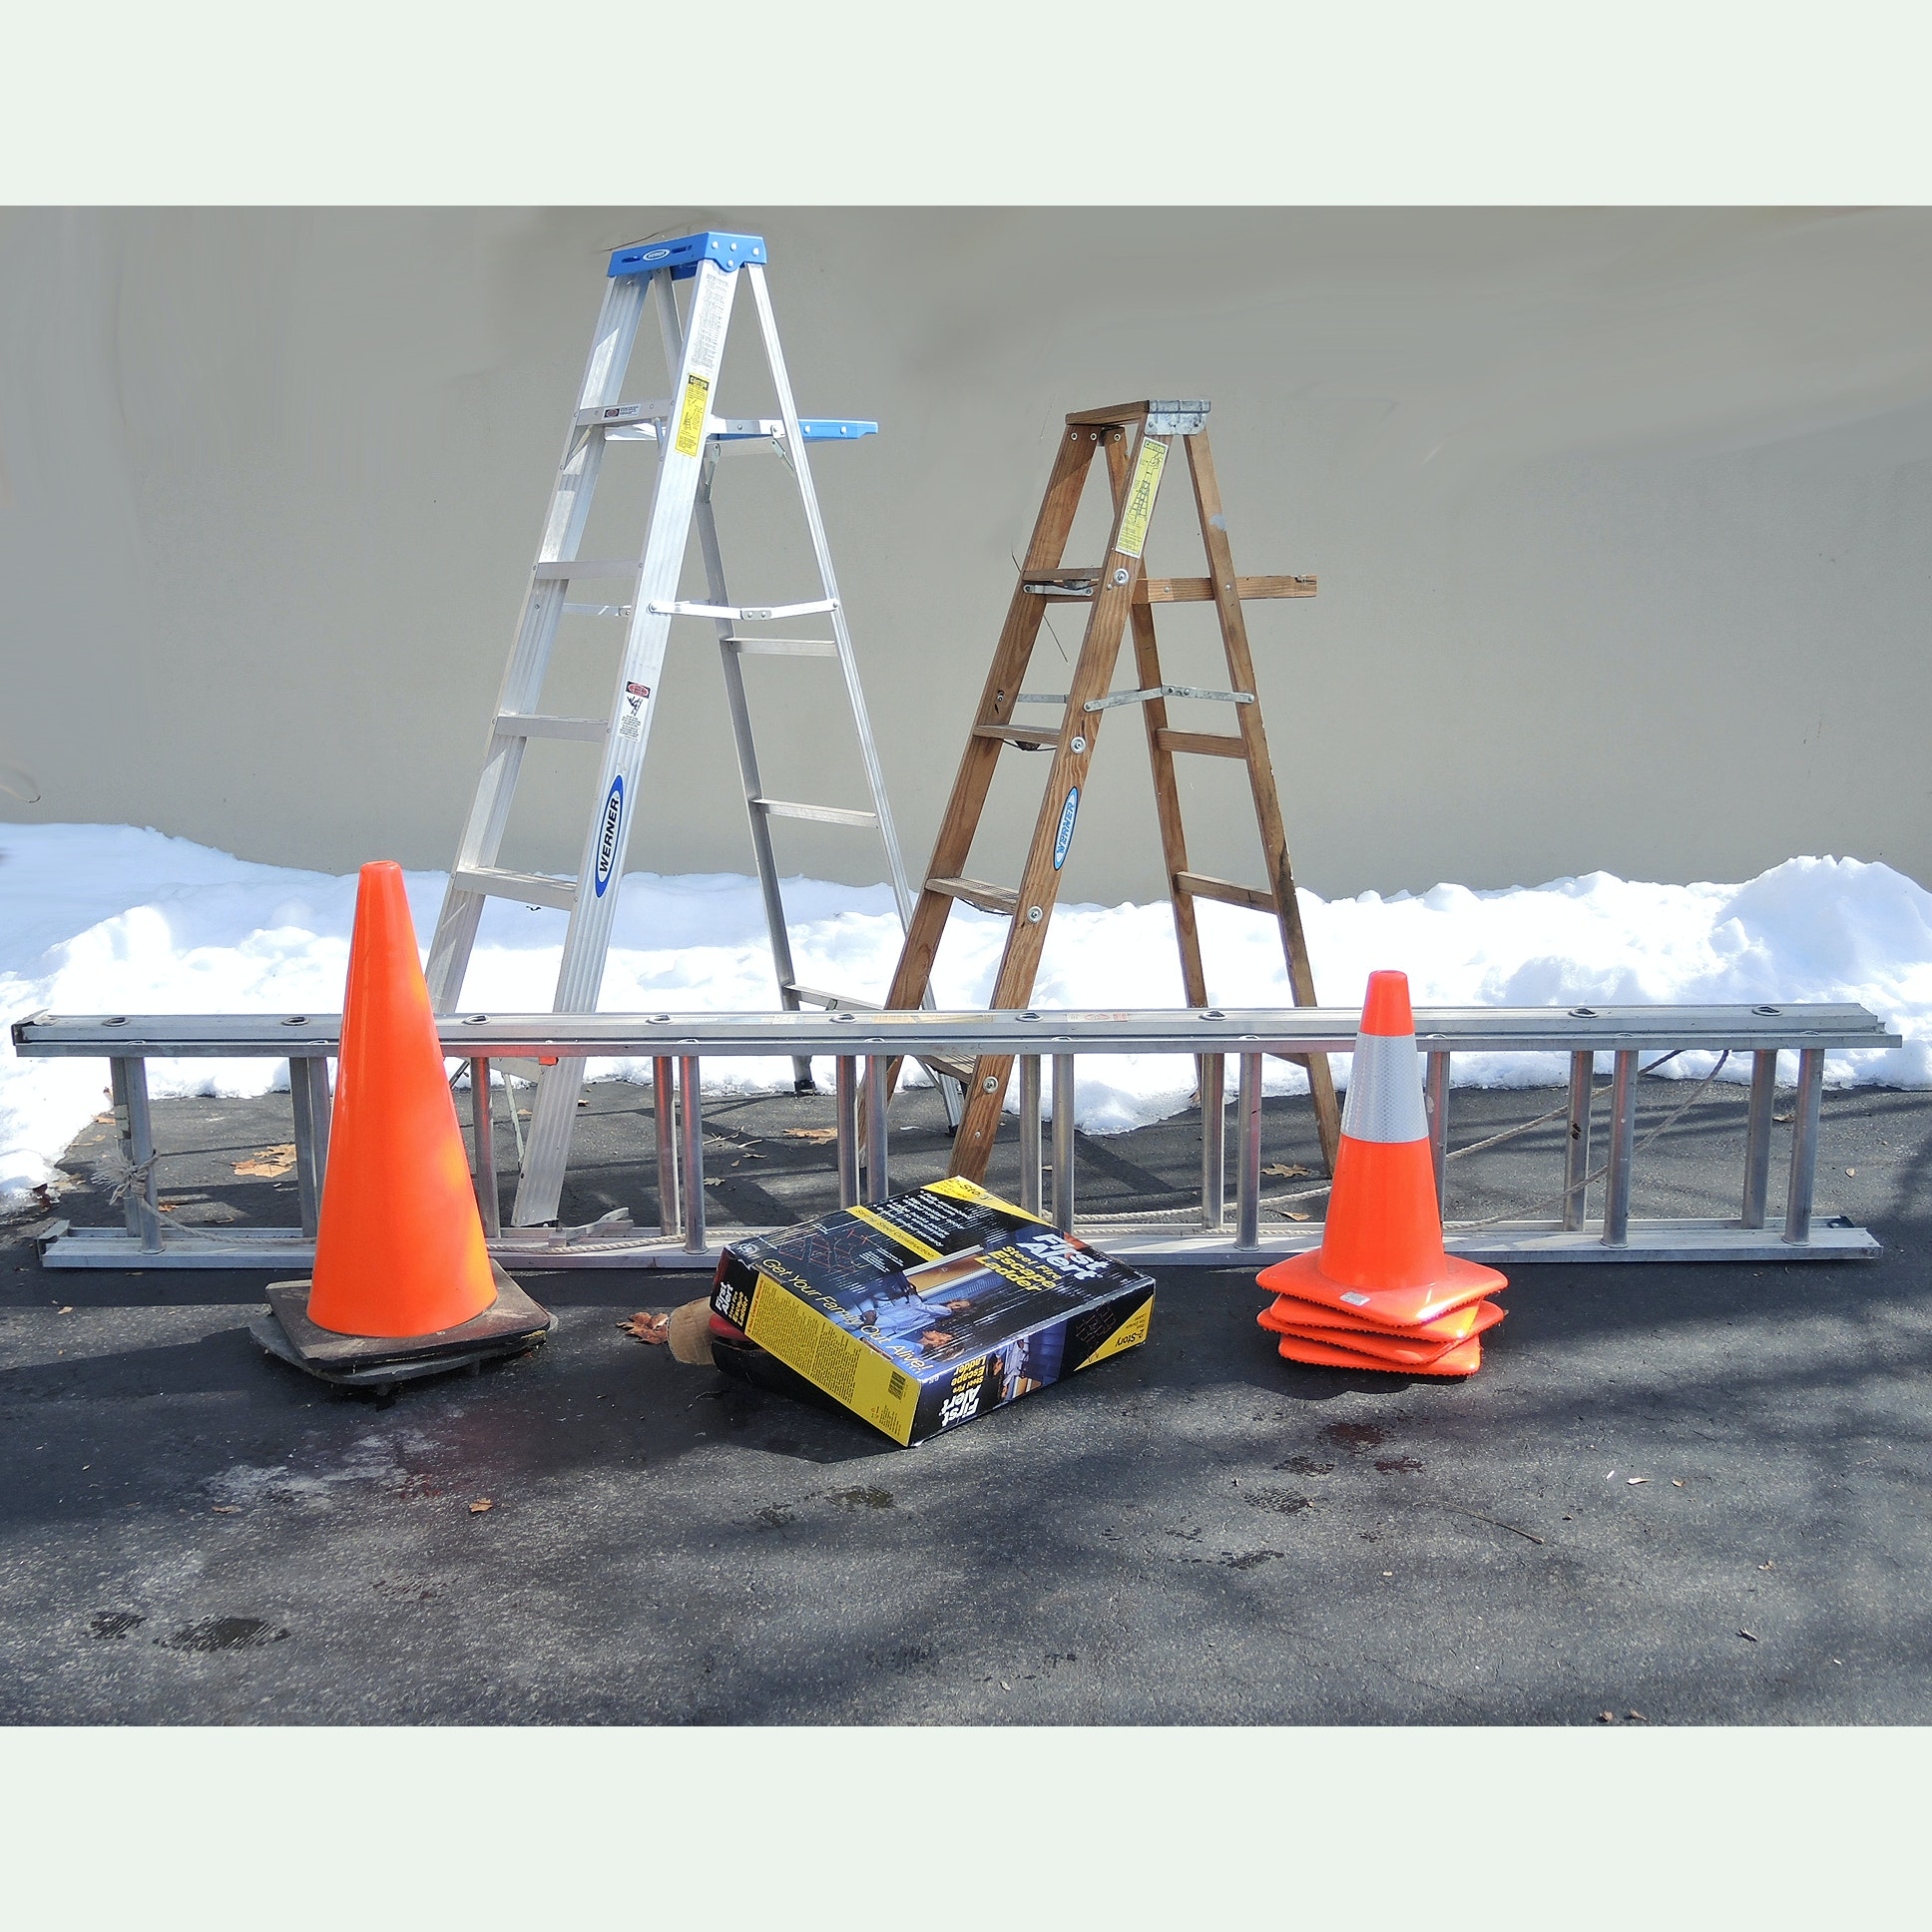 Folding Ladders, Traffic Cones, Fire Escape and Extension Ladder